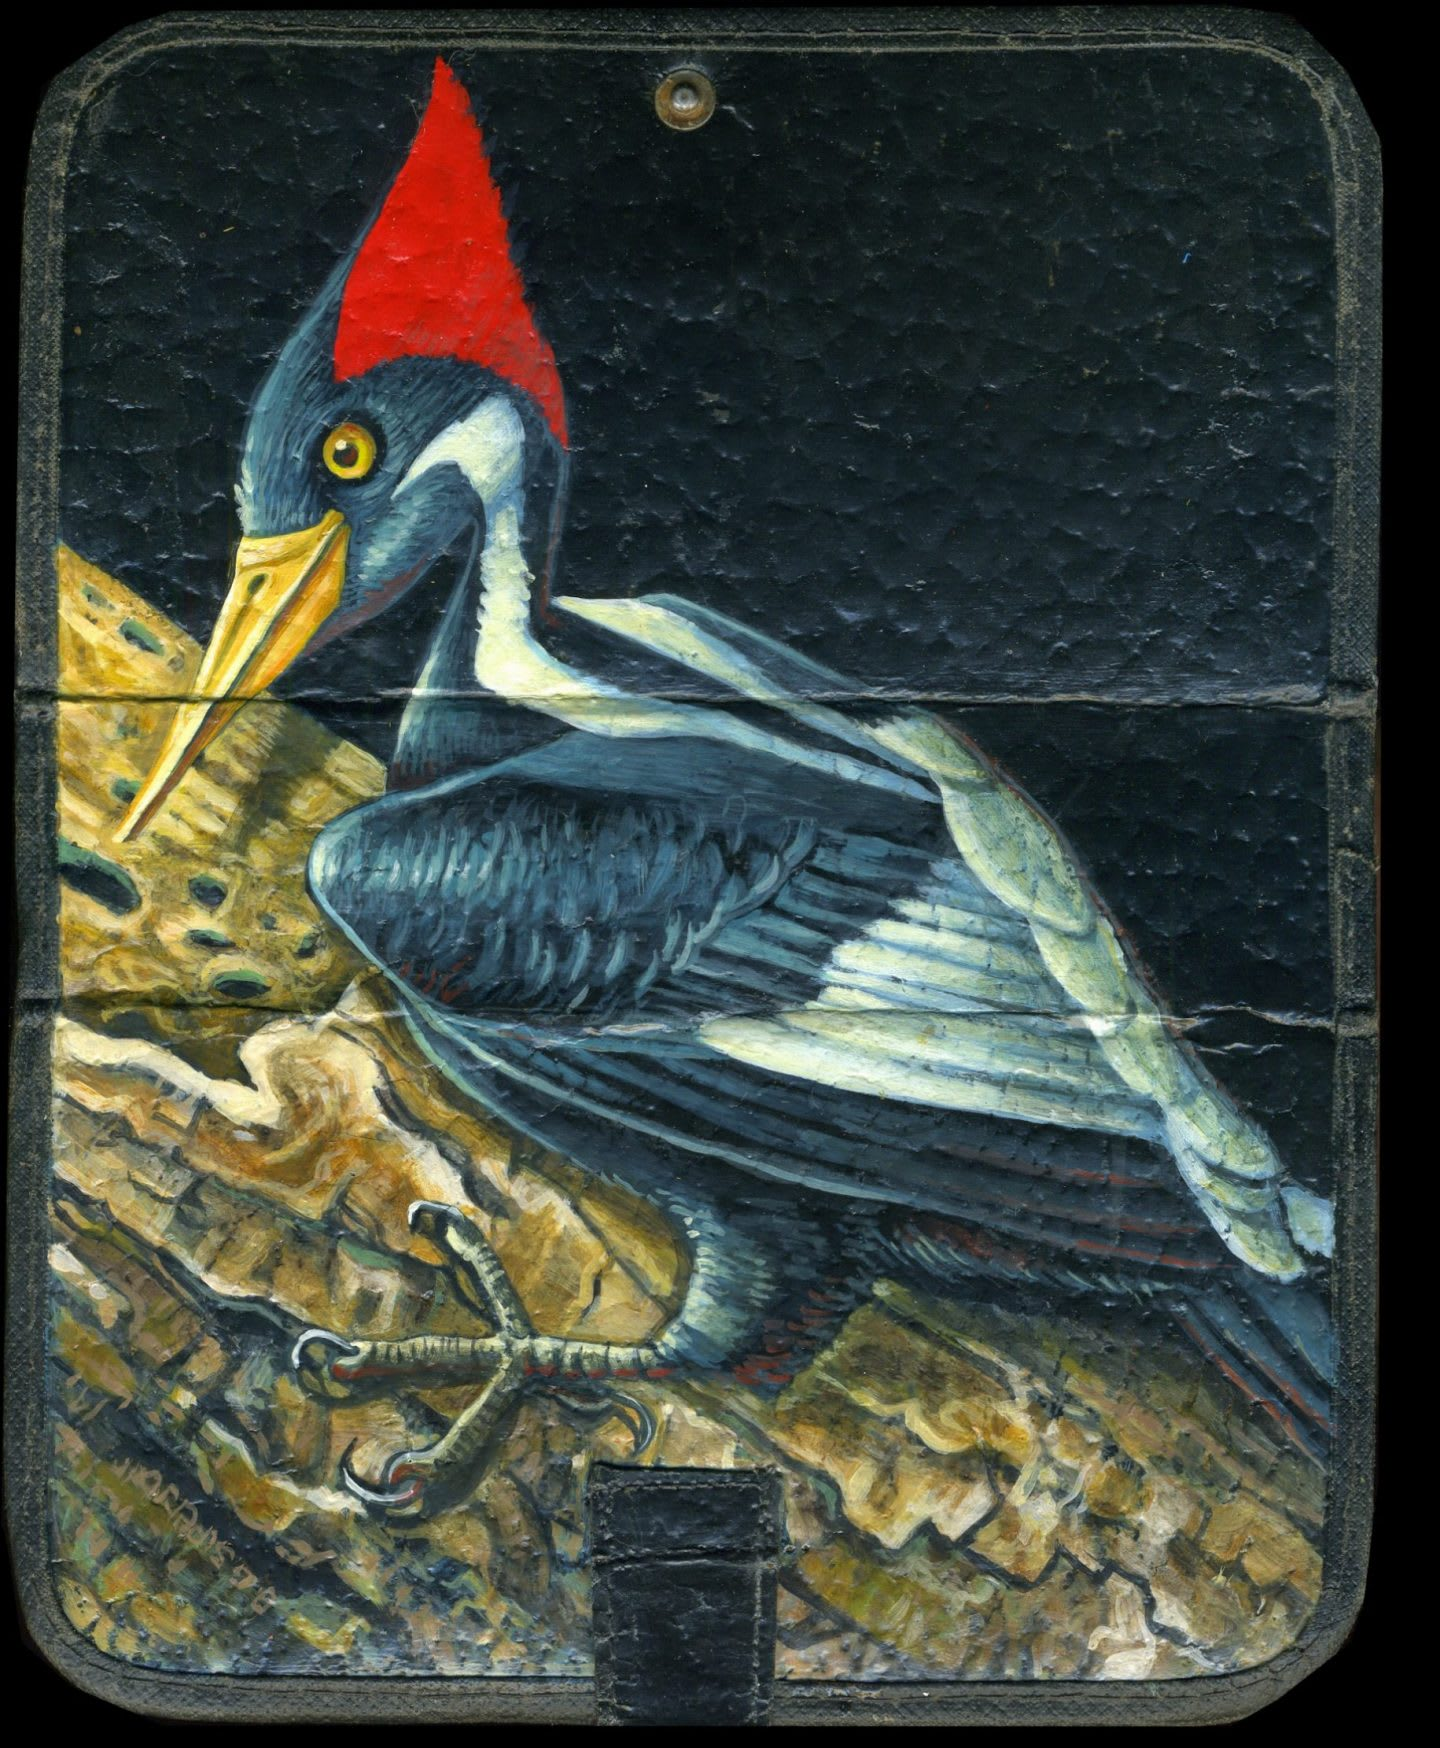 Painting of ivory hornbill bird on case, art, artwork, painting, creativity, Brett Superstar, adidas, employee